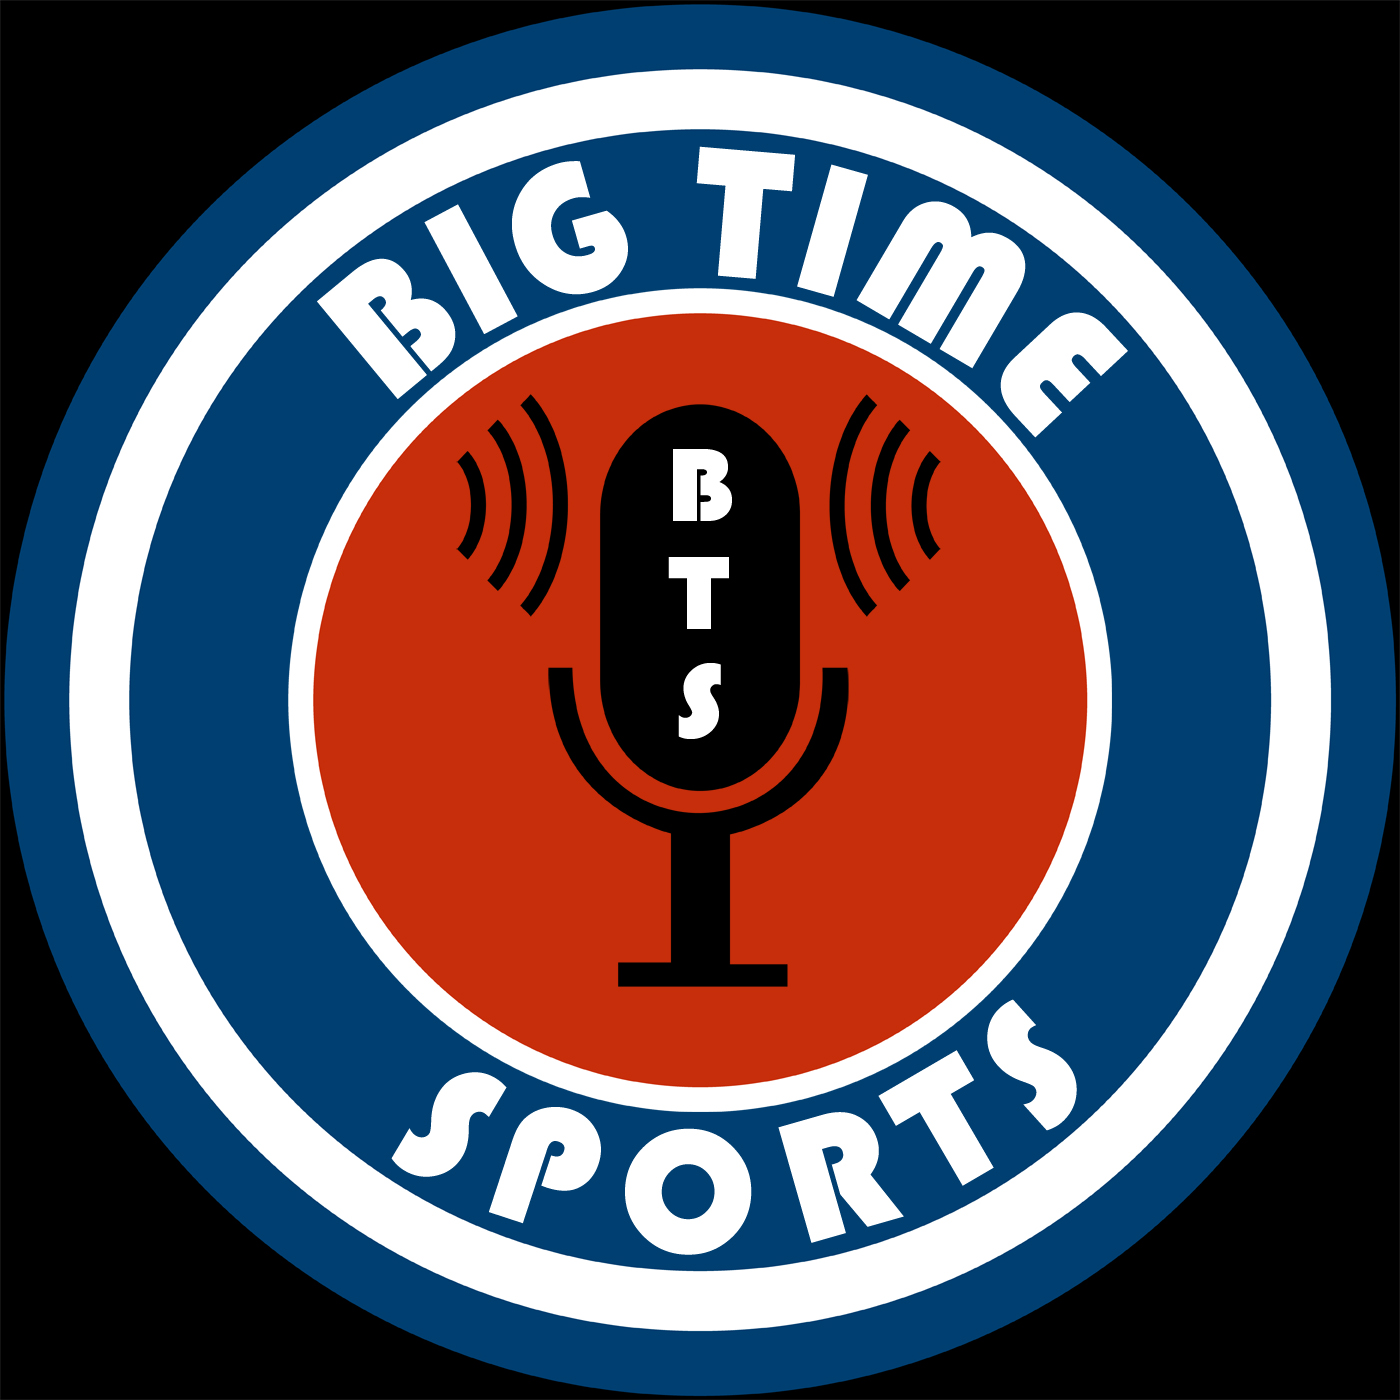 NTN » BT Sports Radio